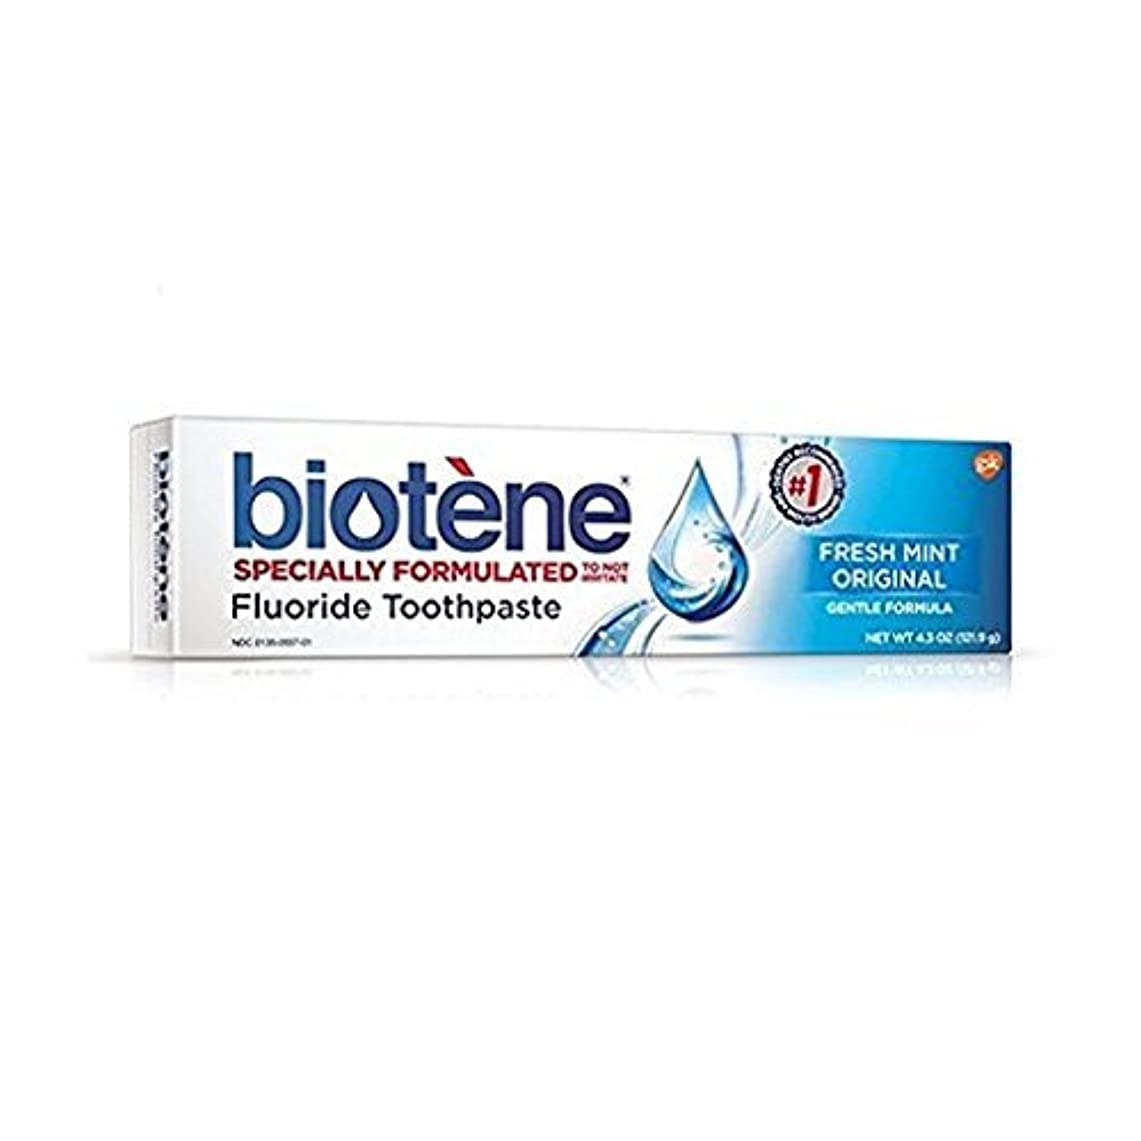 爪あなたのもの苦難Biotene Dry Mouth Fluoride Toothpaste Fresh Mint Original 4.3 Oz. (2 Pack) by Biotene